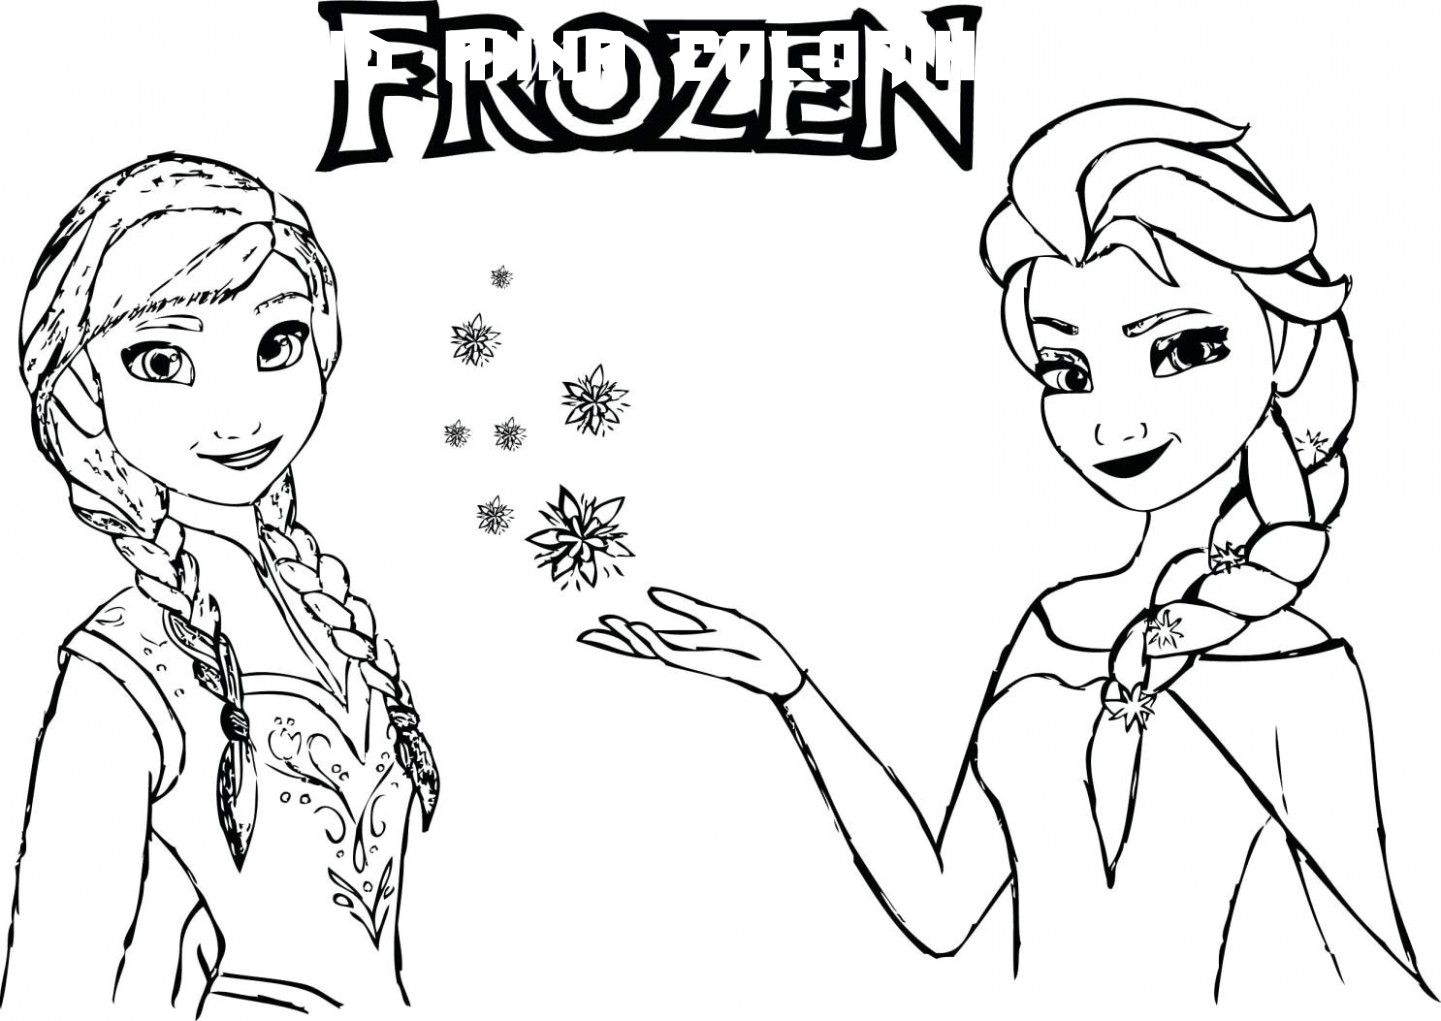 6 Elsa And Anna Coloring Pages Free In 2020 Elsa Coloring Pages Disney Princess Coloring Pages Frozen Coloring